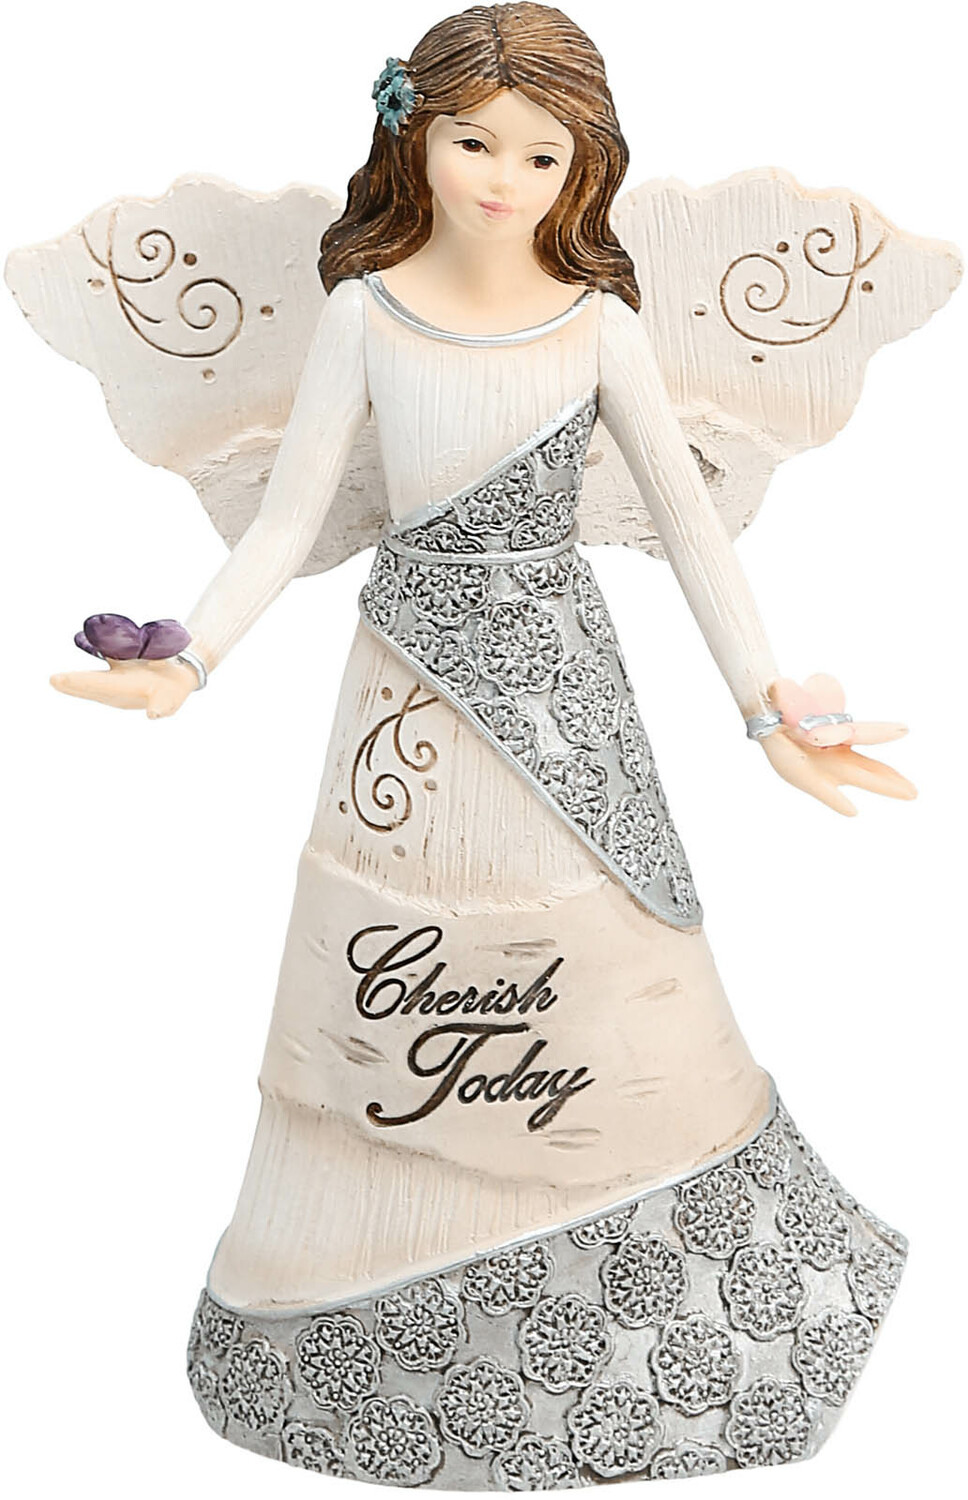 "Cherish Today by Elements - Cherish Today - 5.5"" Angel Holding Butterflies"